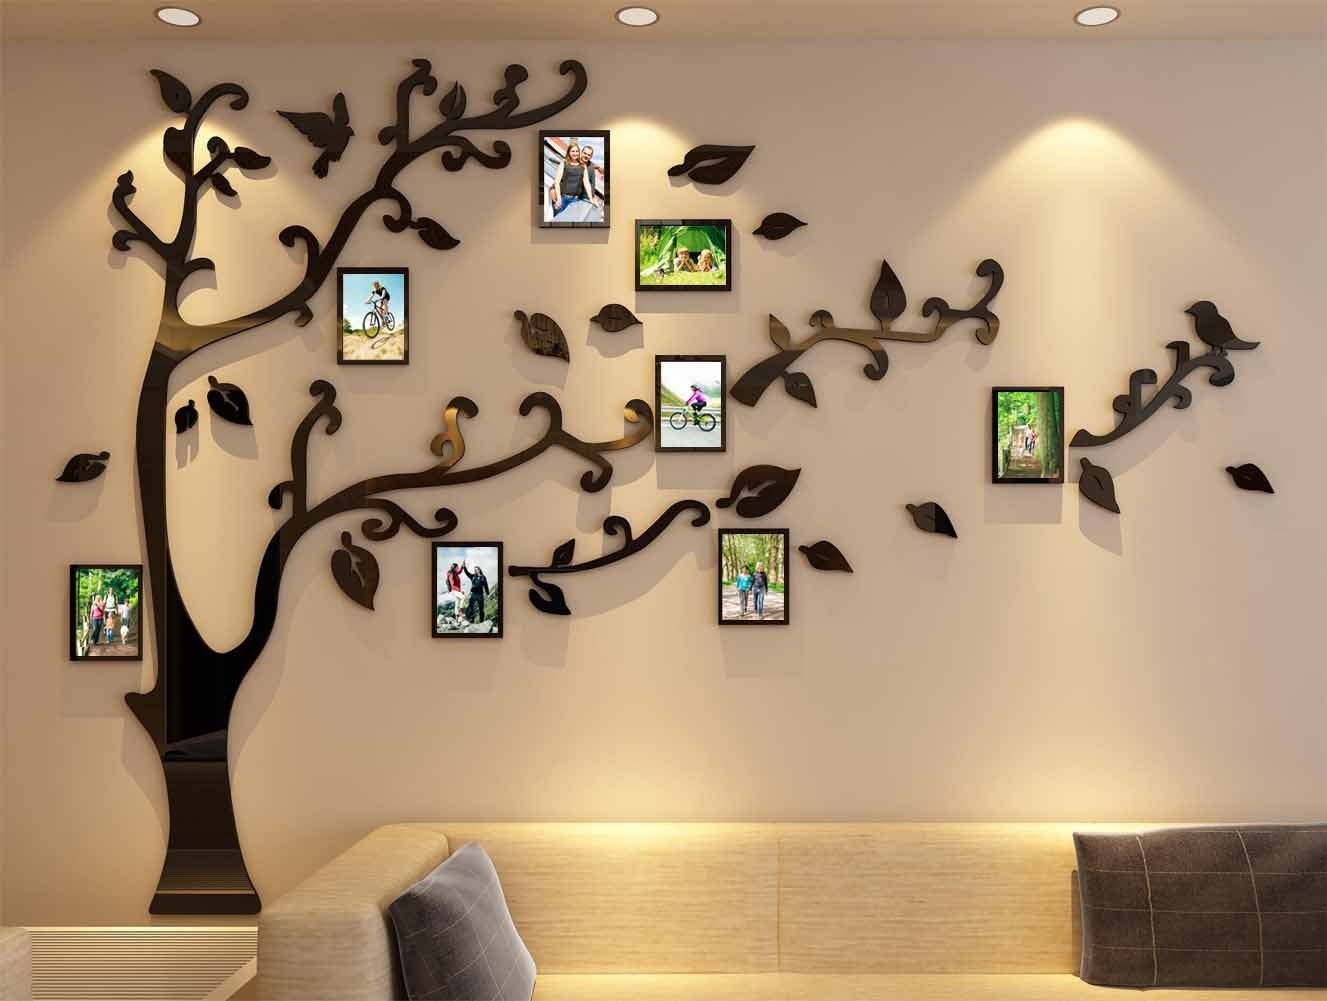 3d Picture Frames Tree Wall Murals for Living Room Bedroom Sofa Backdrop Tv Wall Background, Originality Stickers, Wall Decor Decal Sticker (70(H) x 98(W) inches) by DecorSmart (Image #1)